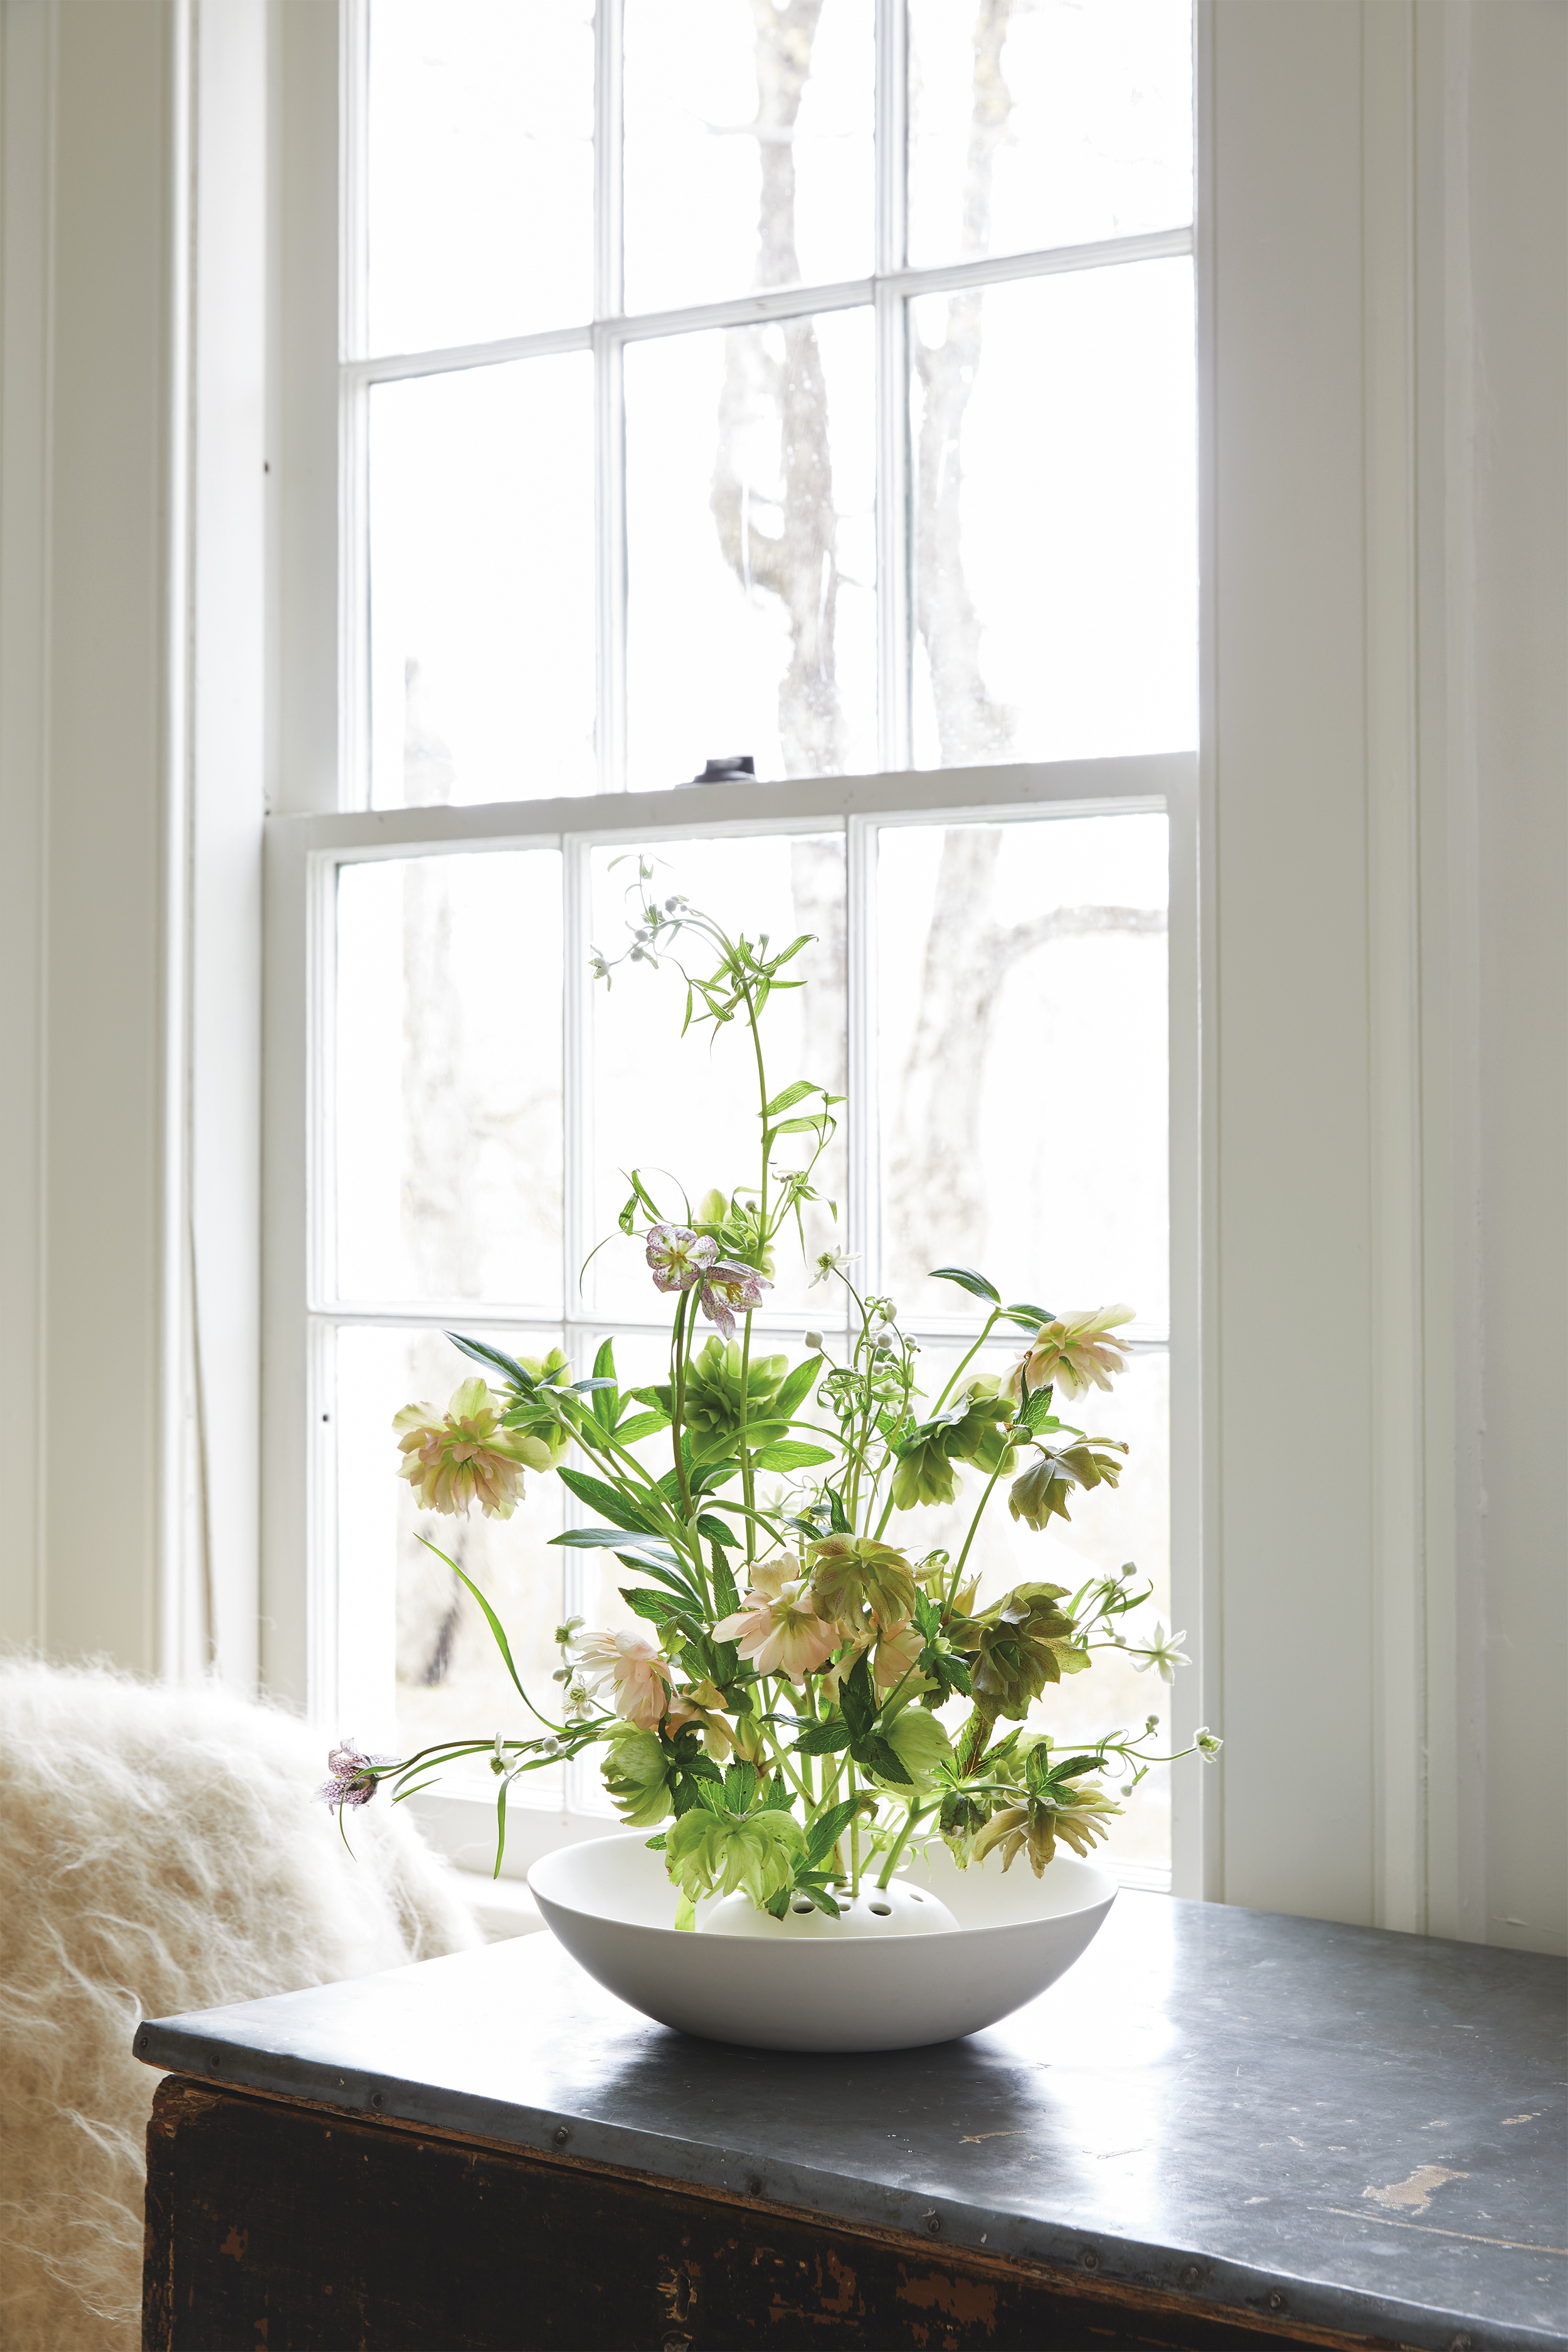 yellow white flowers in frog vase with natural light